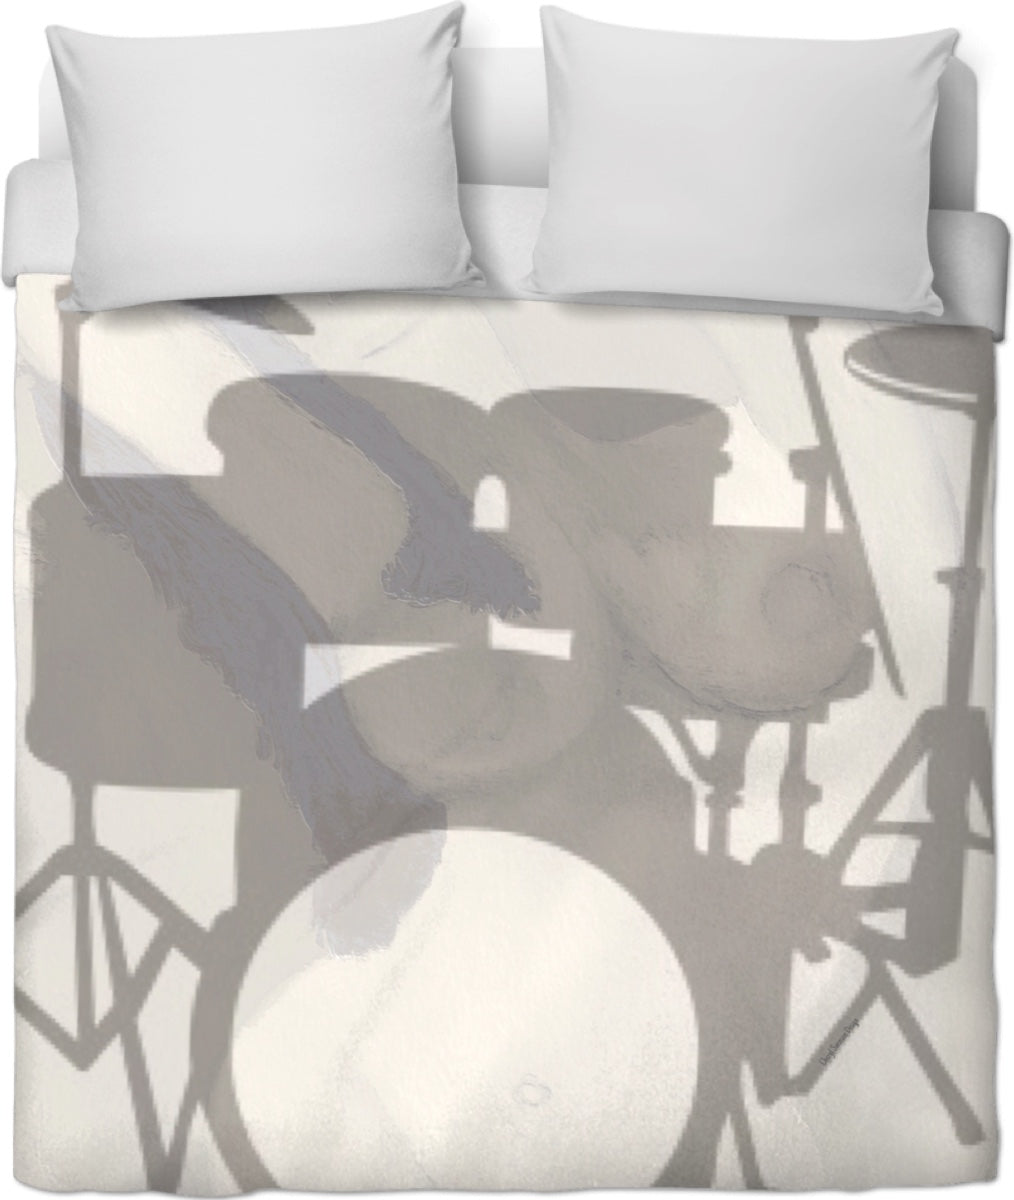 Duvet Covers Drums And Nude 1 r